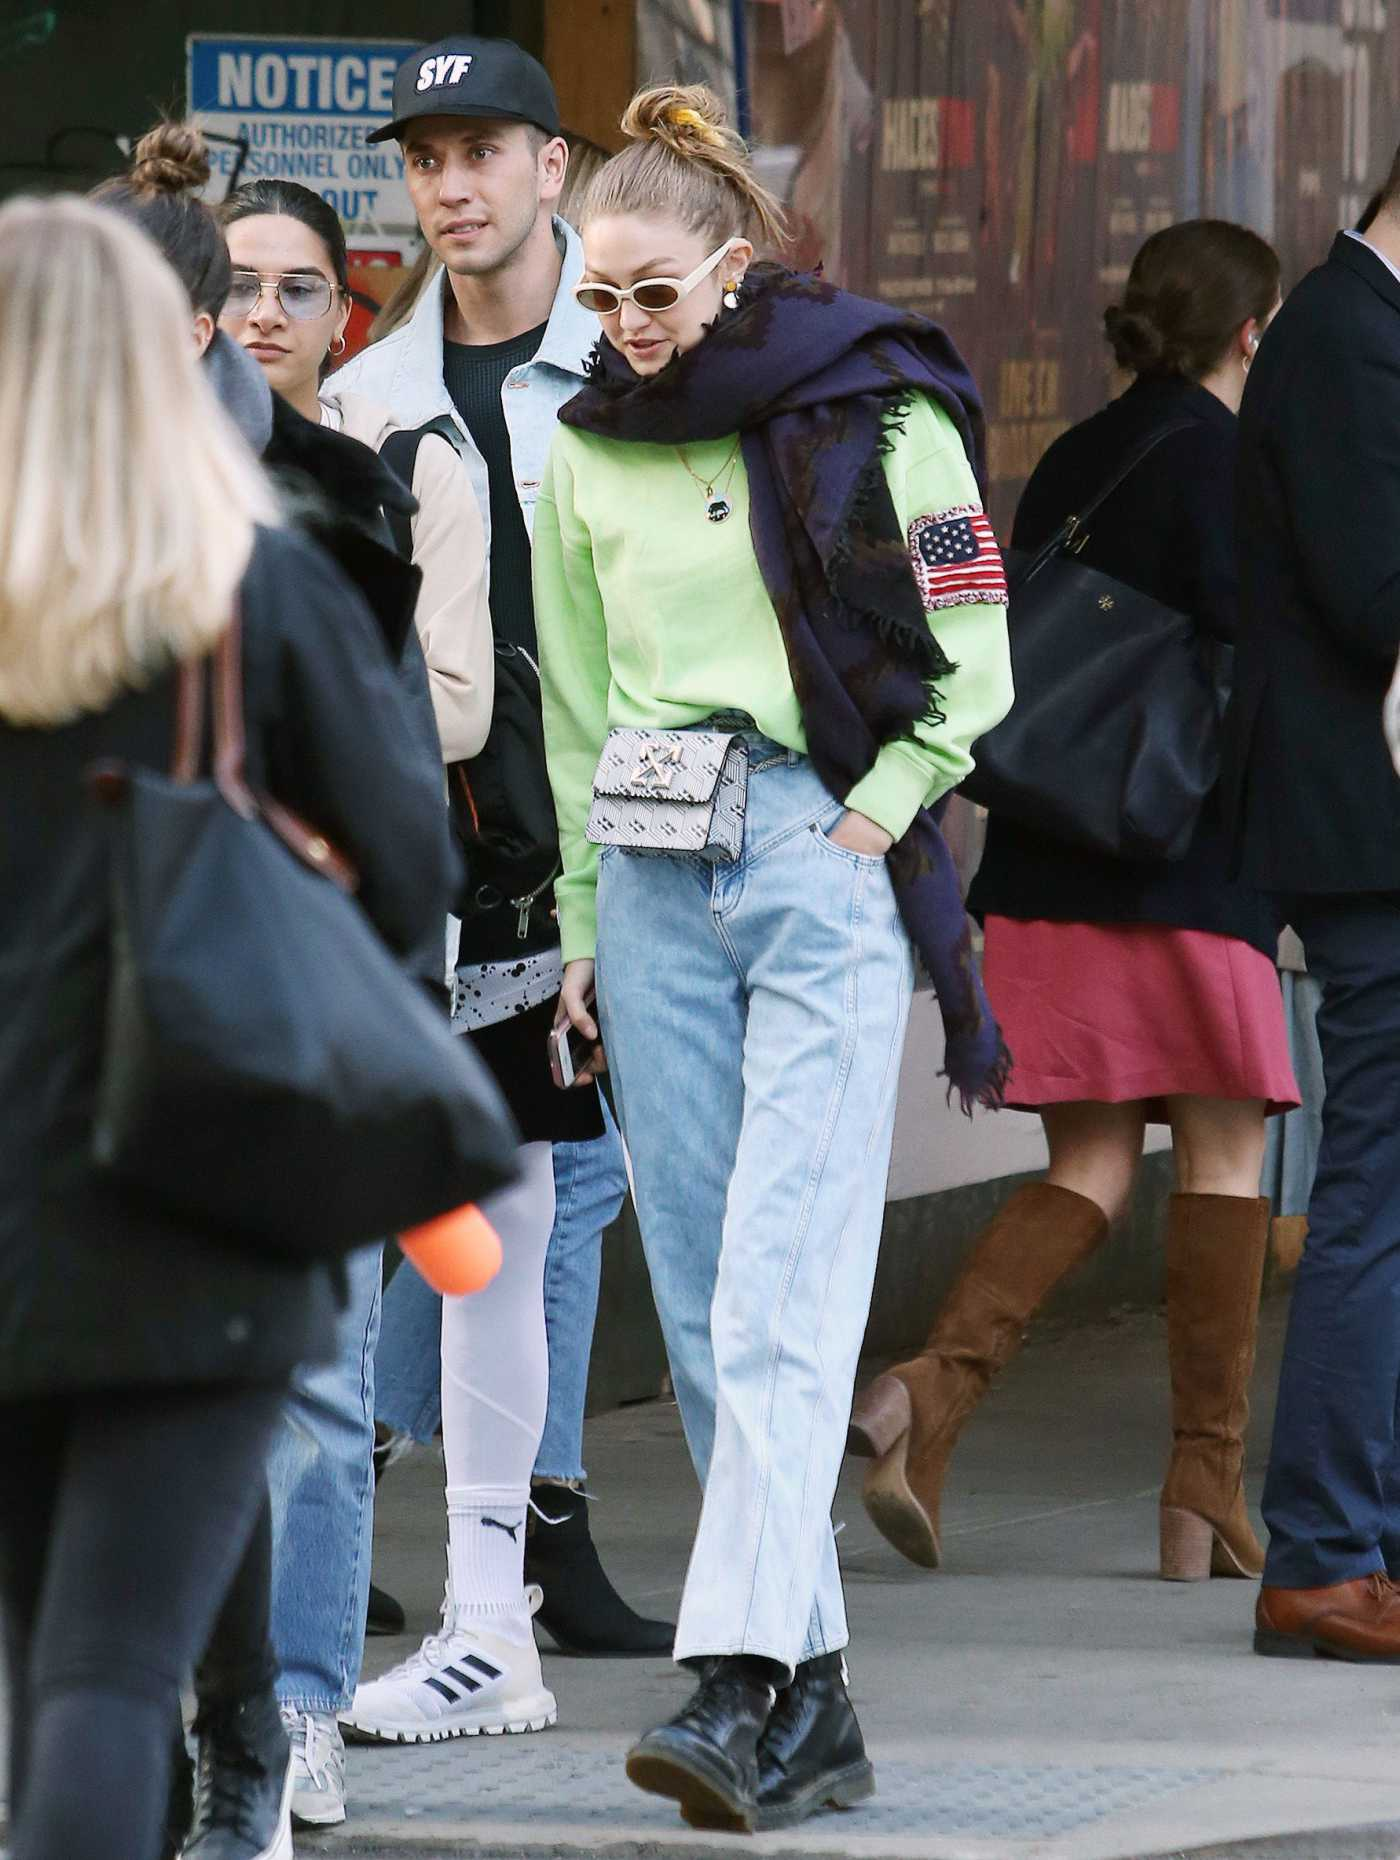 Gigi Hadid in a Light Green Sweatshirt Was Seen  Out with a Friend in NYC 04/17/2019